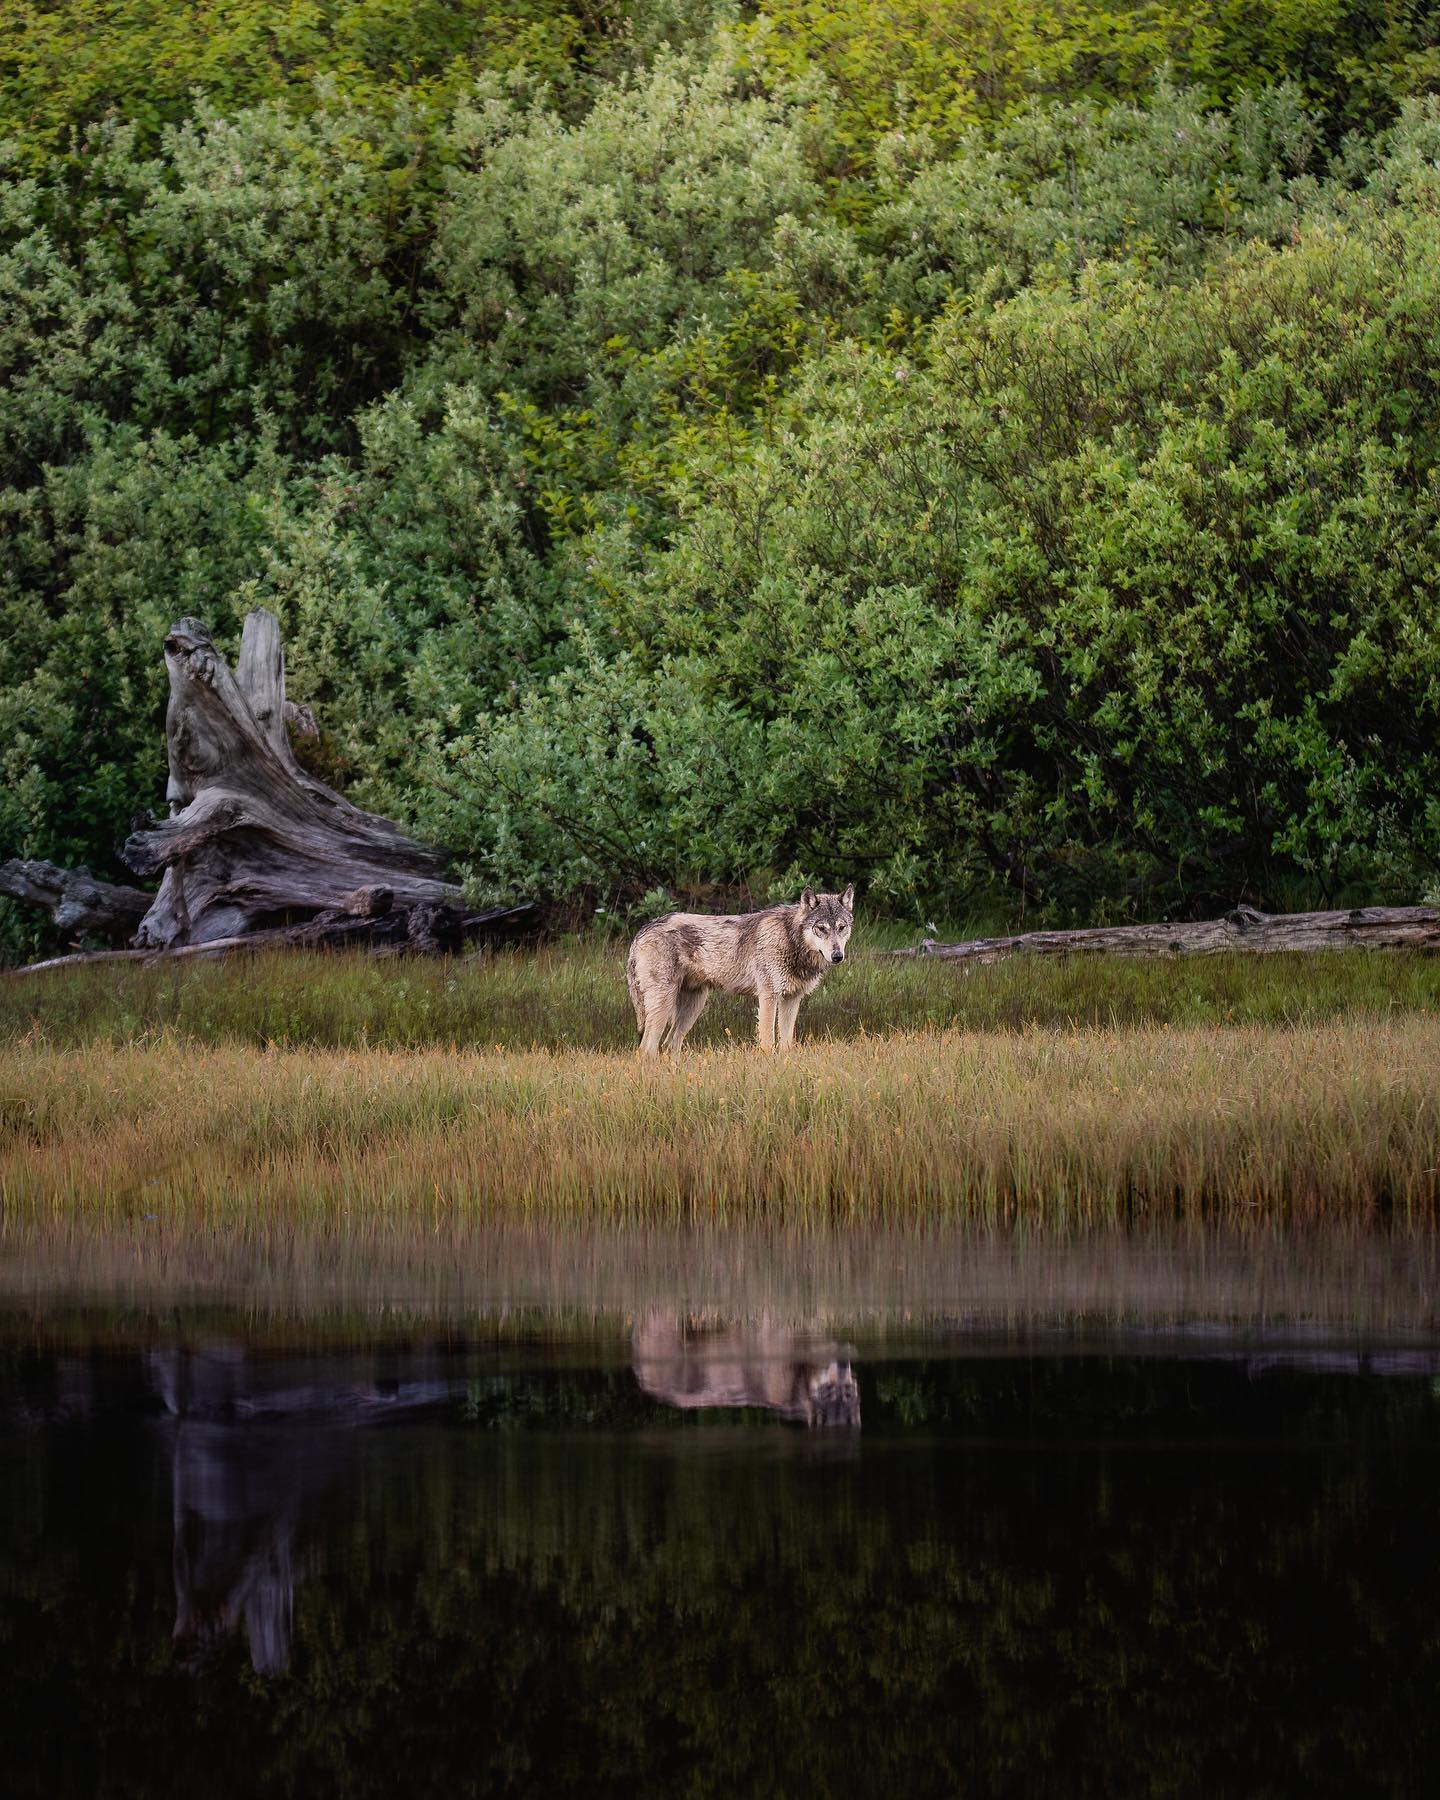 Lone wolf standing still beside water, reflected in it, with forest behind it.